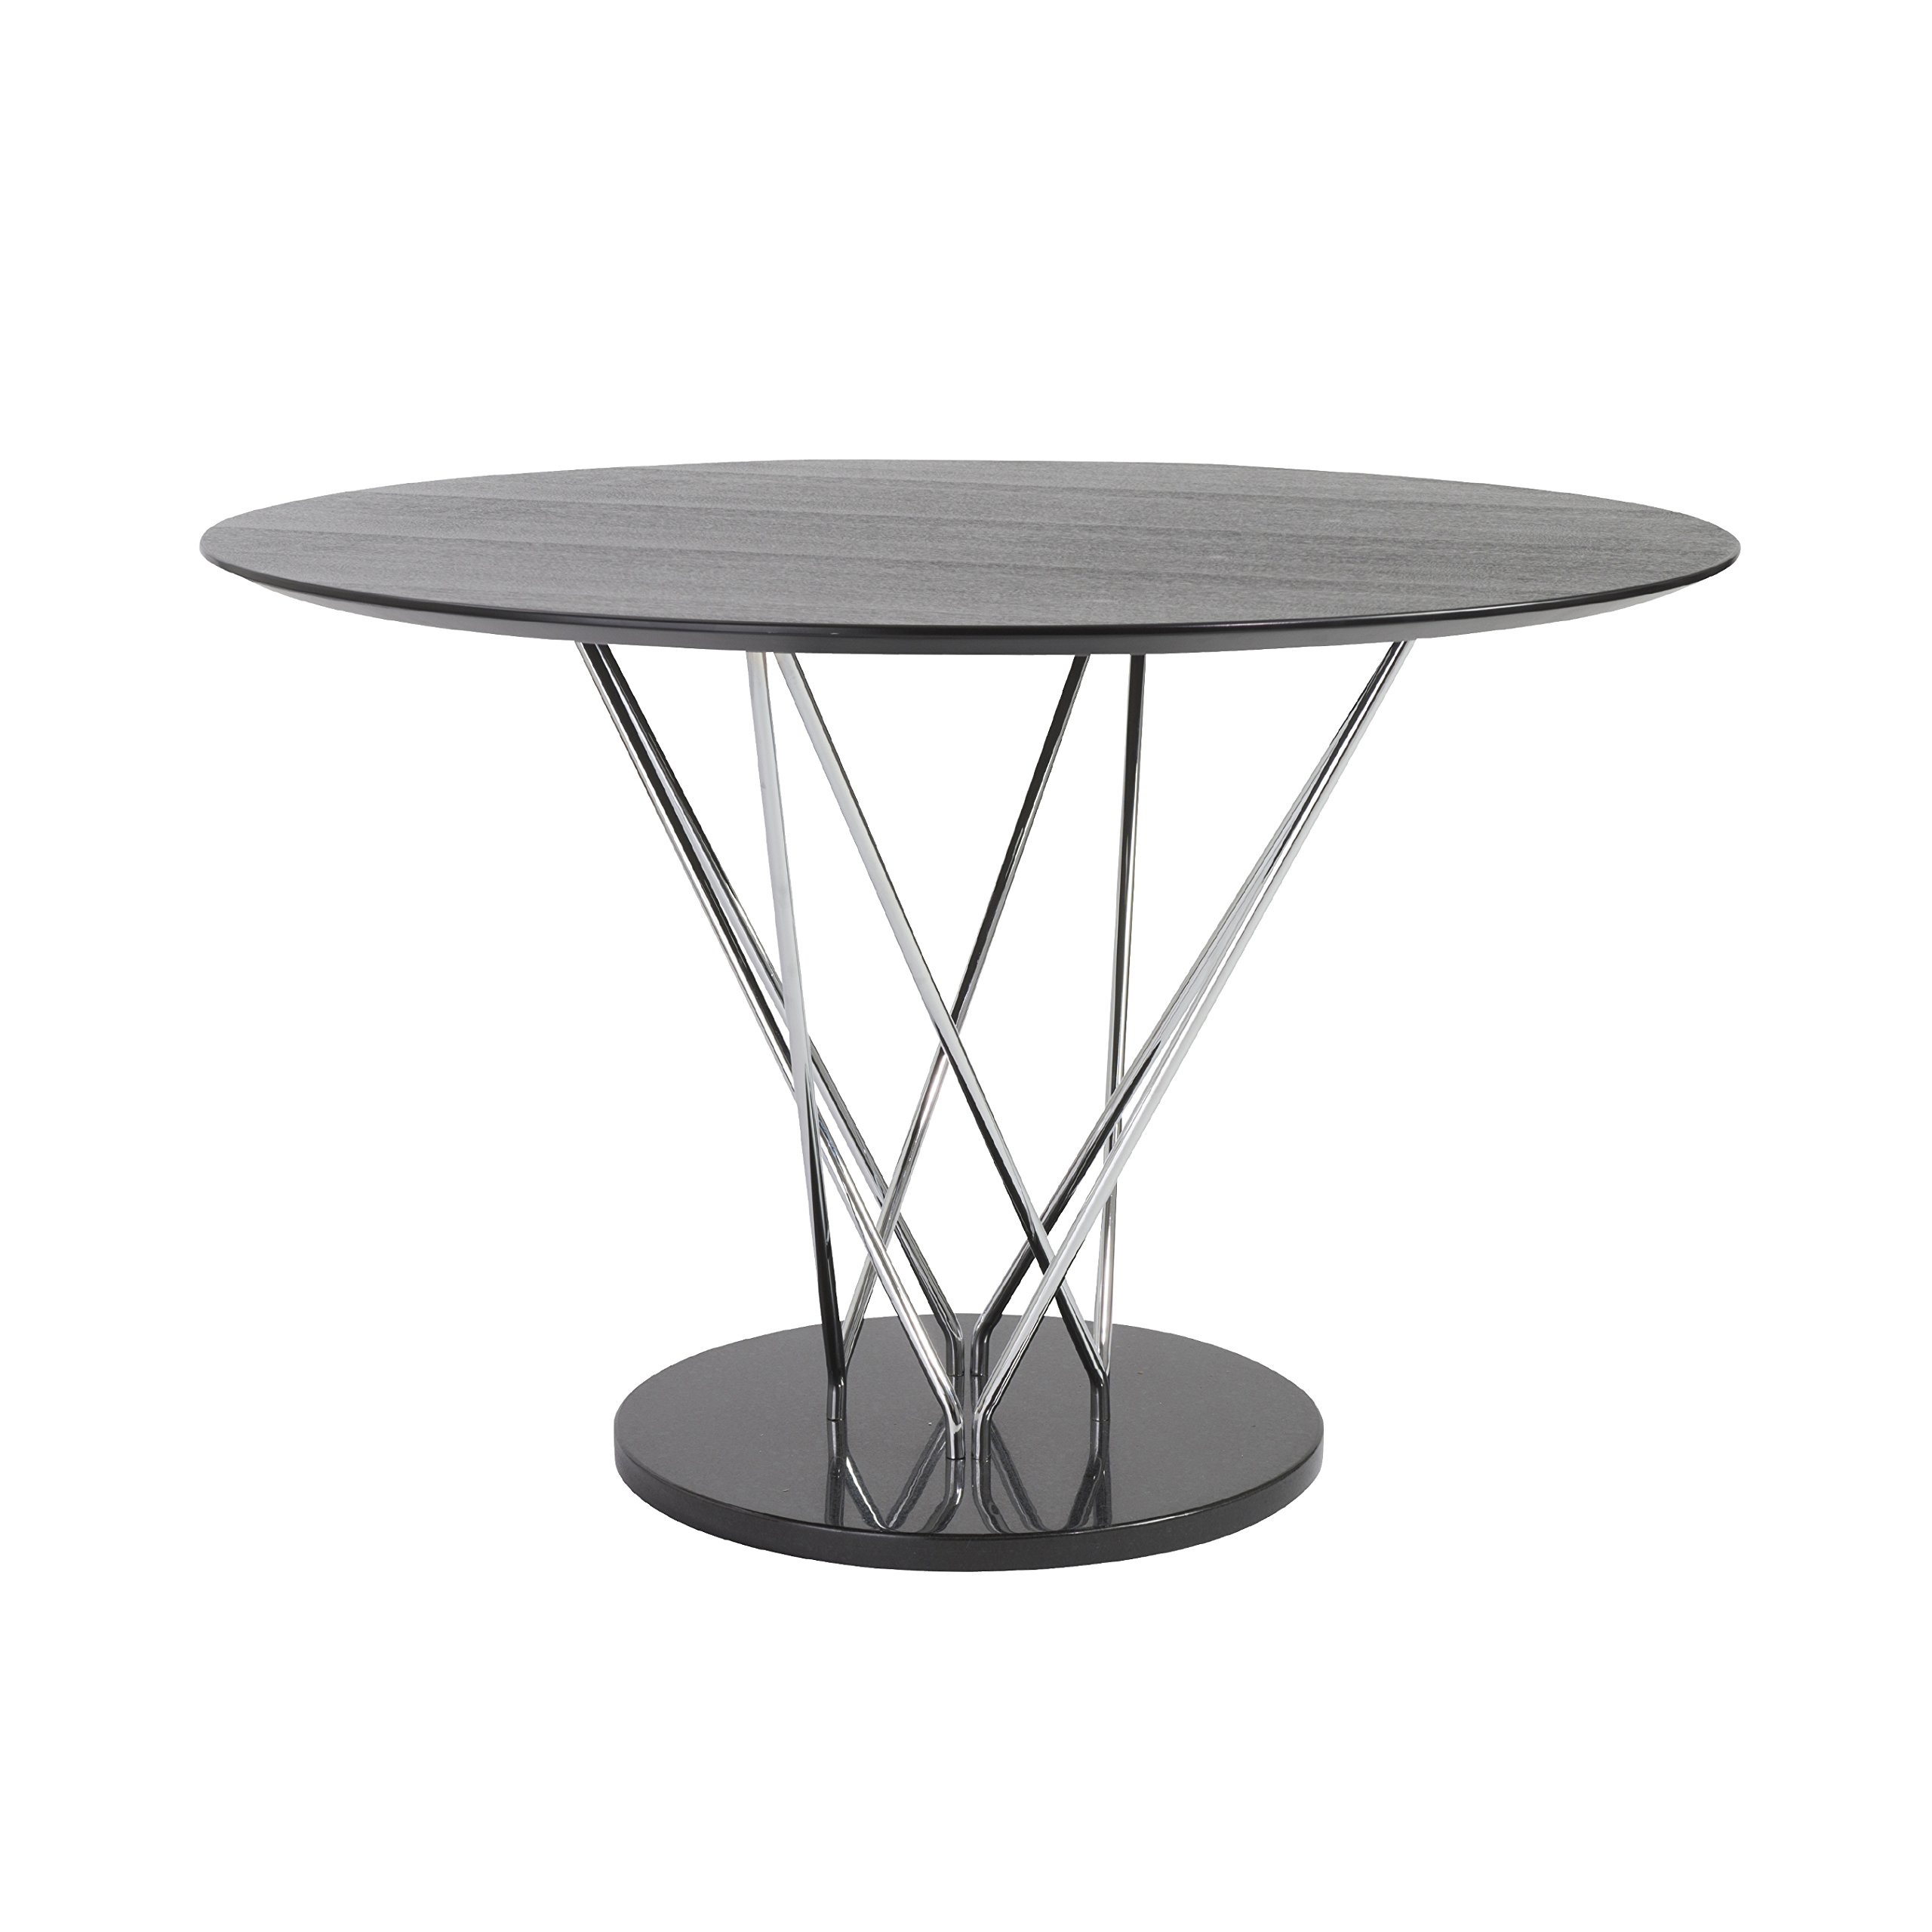 47'' Round Ebony and Steel Meeting Table by eS (Image #1)